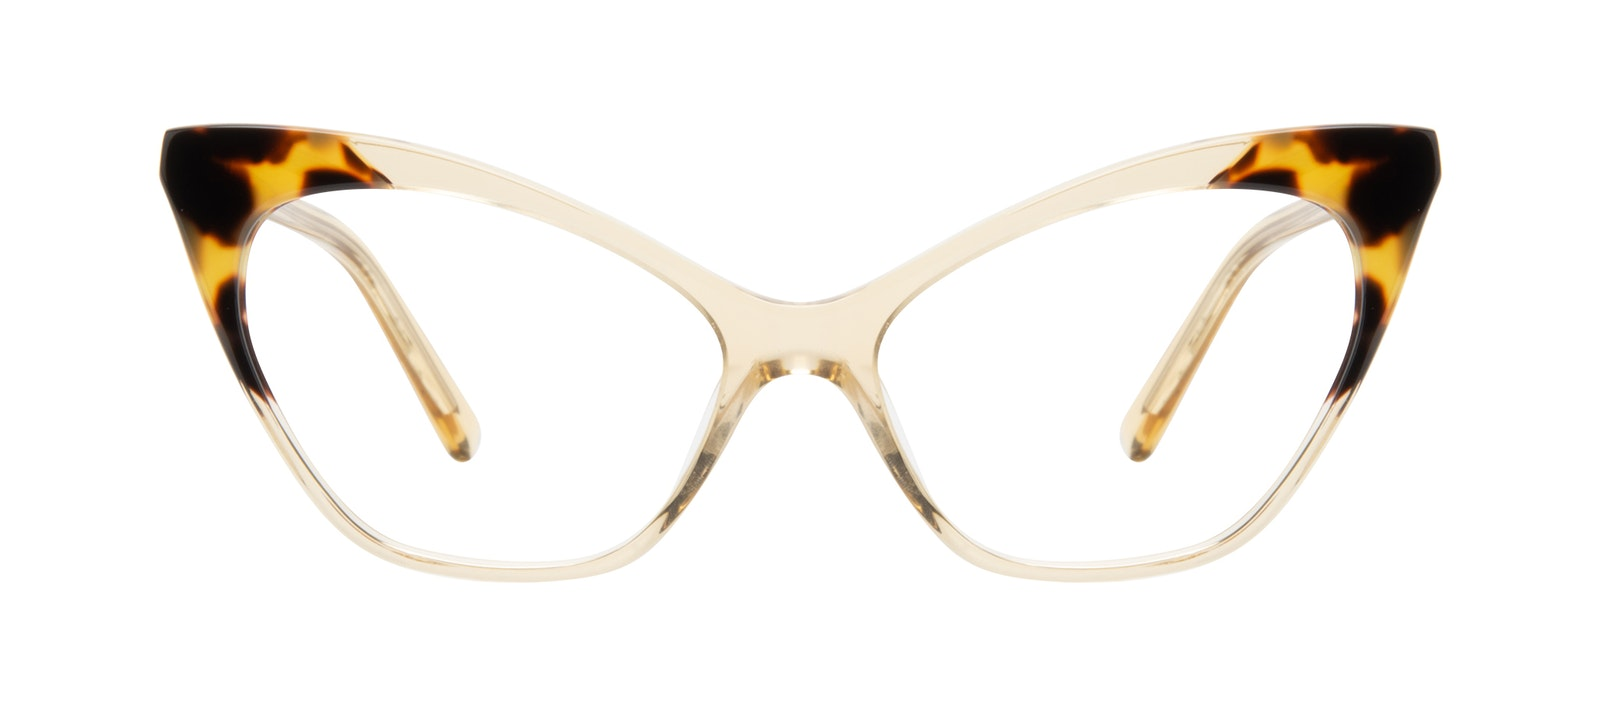 Affordable Fashion Glasses Cat Eye Eyeglasses Women Gossip Golden Tort Front